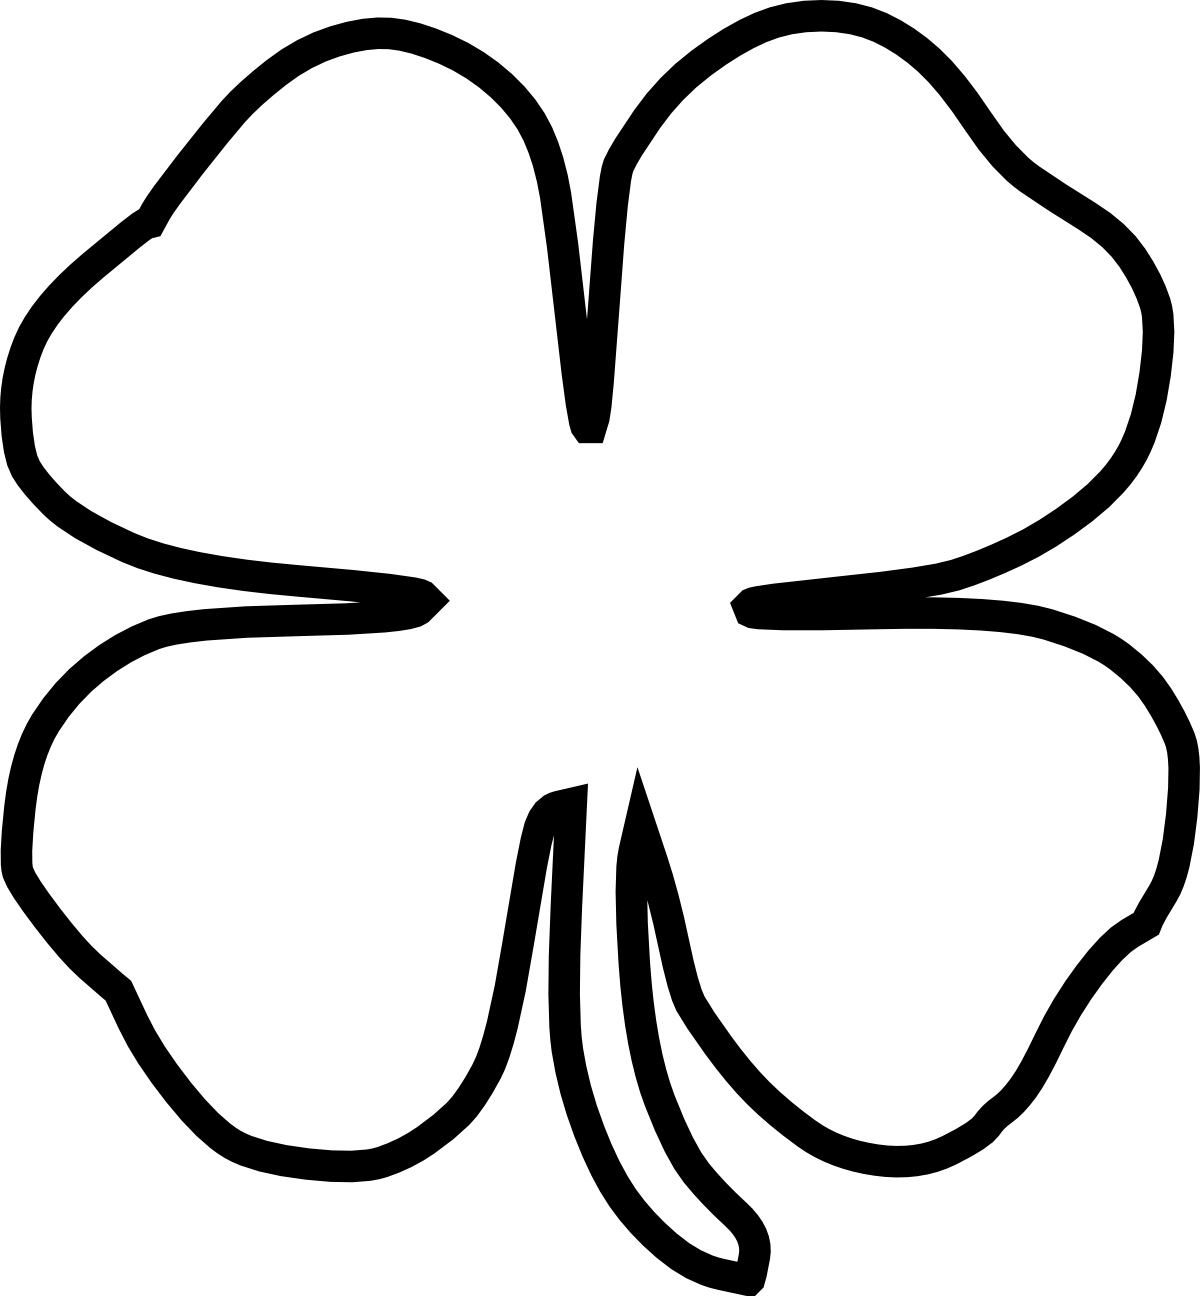 4 Leaf Clover Clip Art Of A Three And Four Leaf Clovers